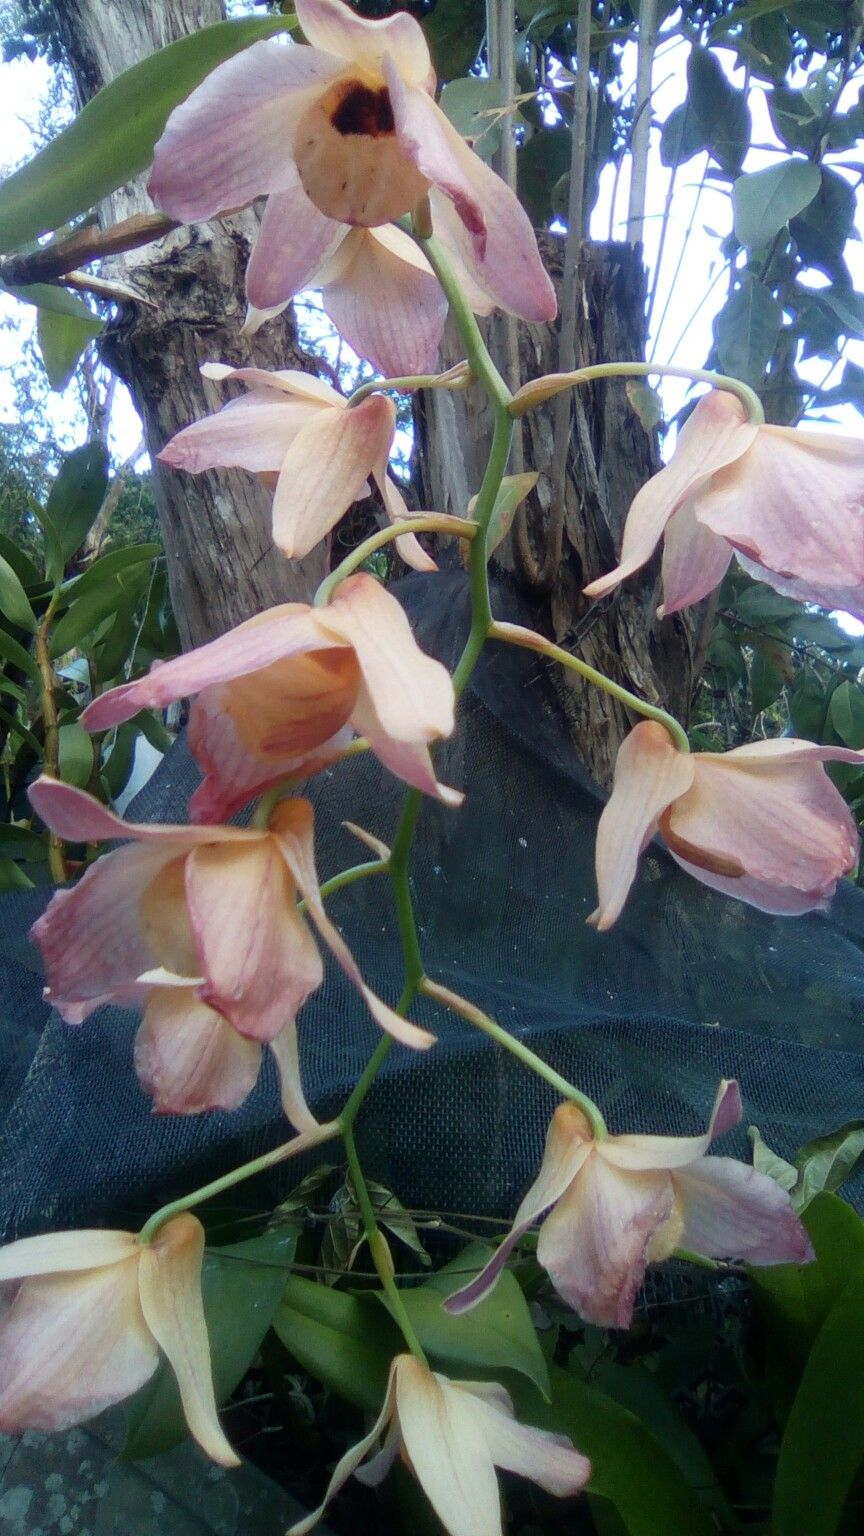 Pin by tania borges on orquideas flor preferida pinterest